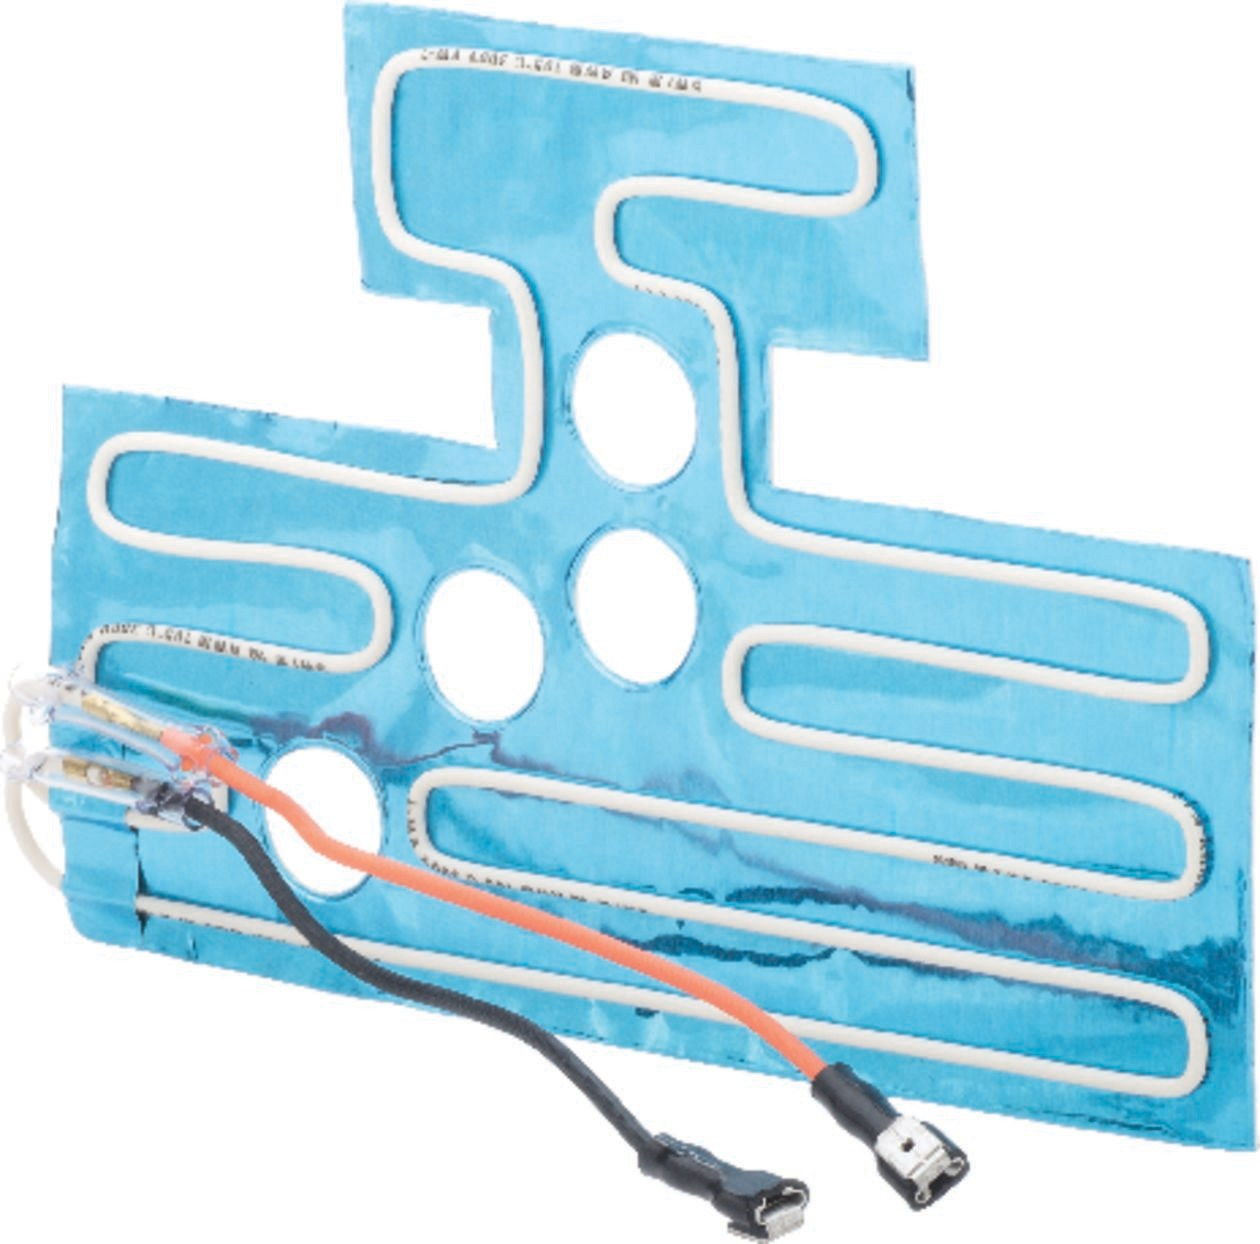 Garage Installation Kit for Low Ambient Temperature